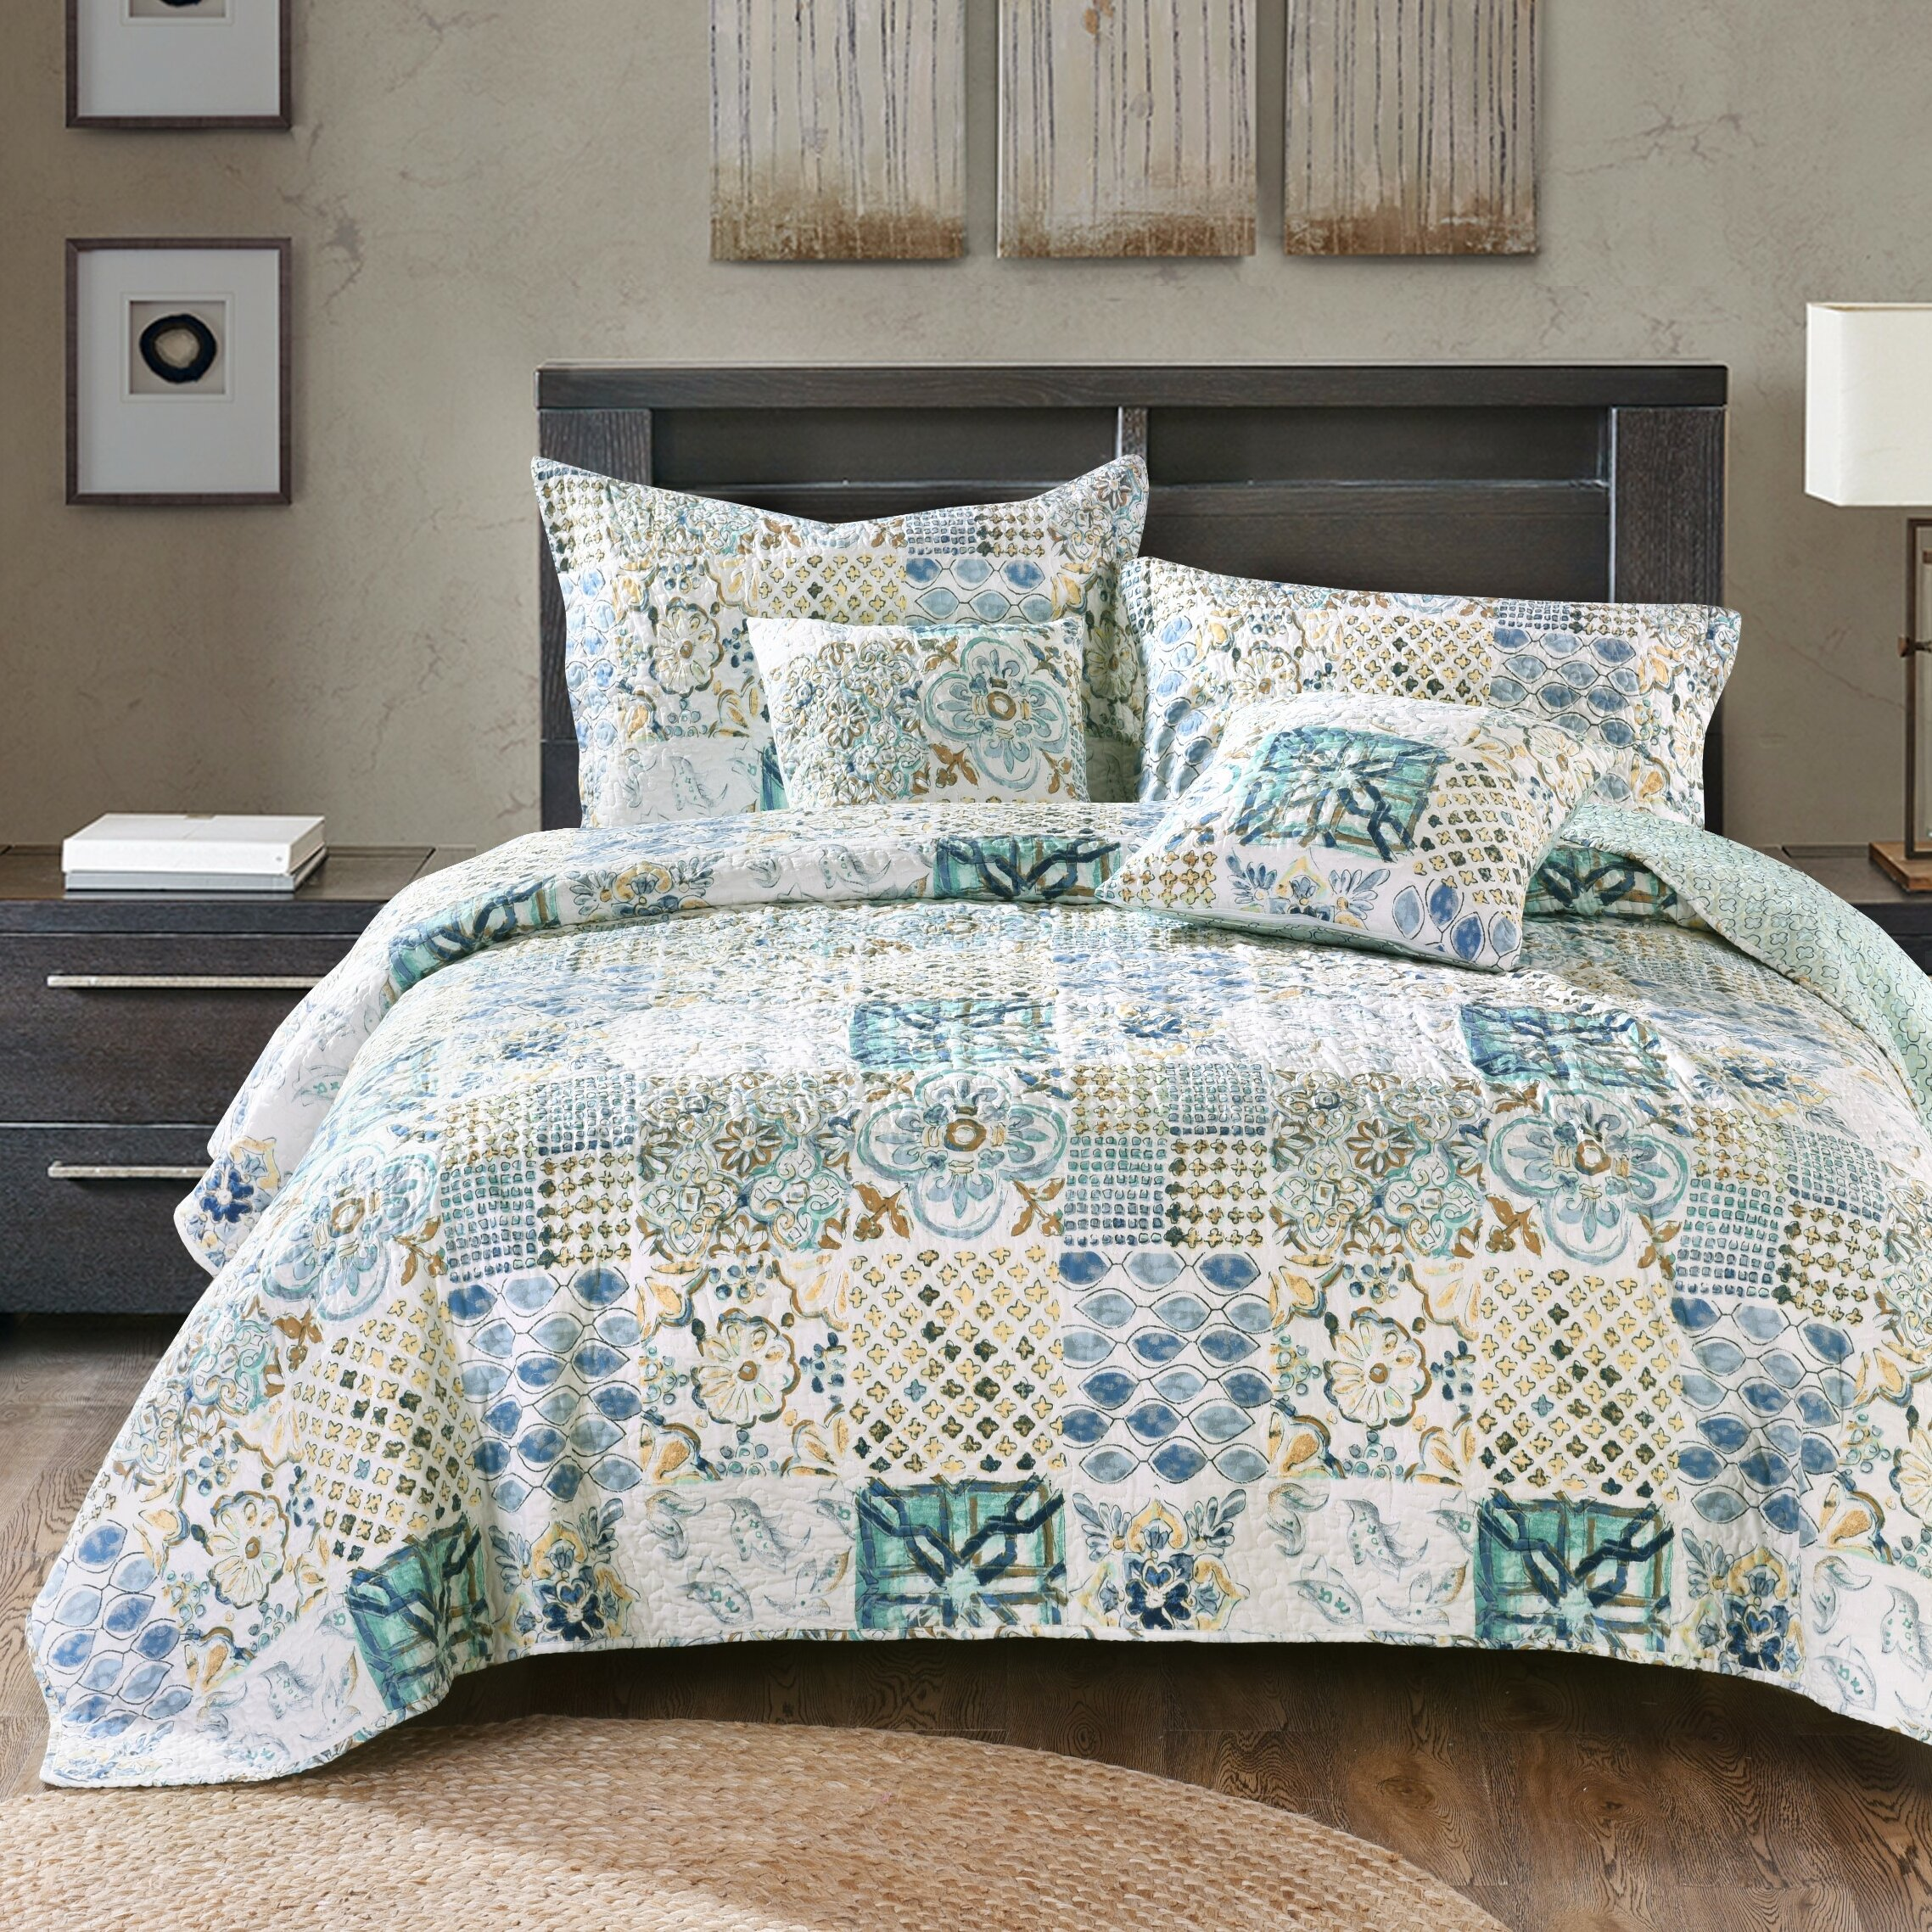 with comforter shipping product comforters tabs quilted duvet alternative color quilt reversible overstock orders brookside corner options over down multiple bath on bedding free